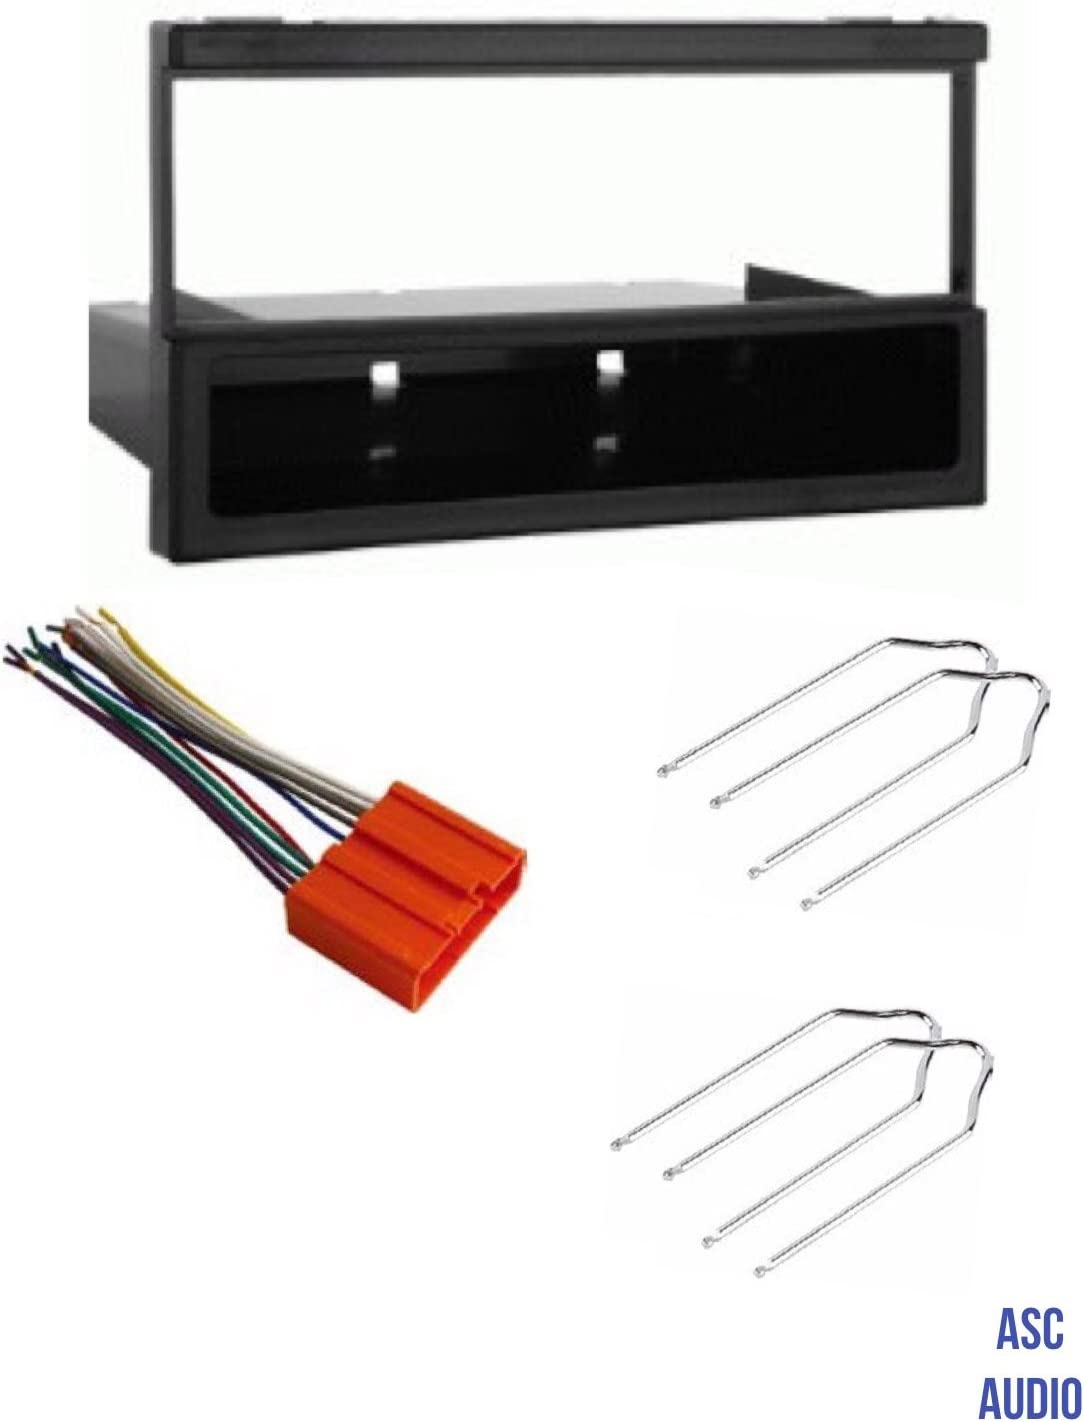 amazon.com: asc car stereo dash install kit, wire harness, and radio tool  for installing a single din aftermarket radio for some mazda vehicles -  please read compatible vehicles and restrictions listed below:  amazon.com